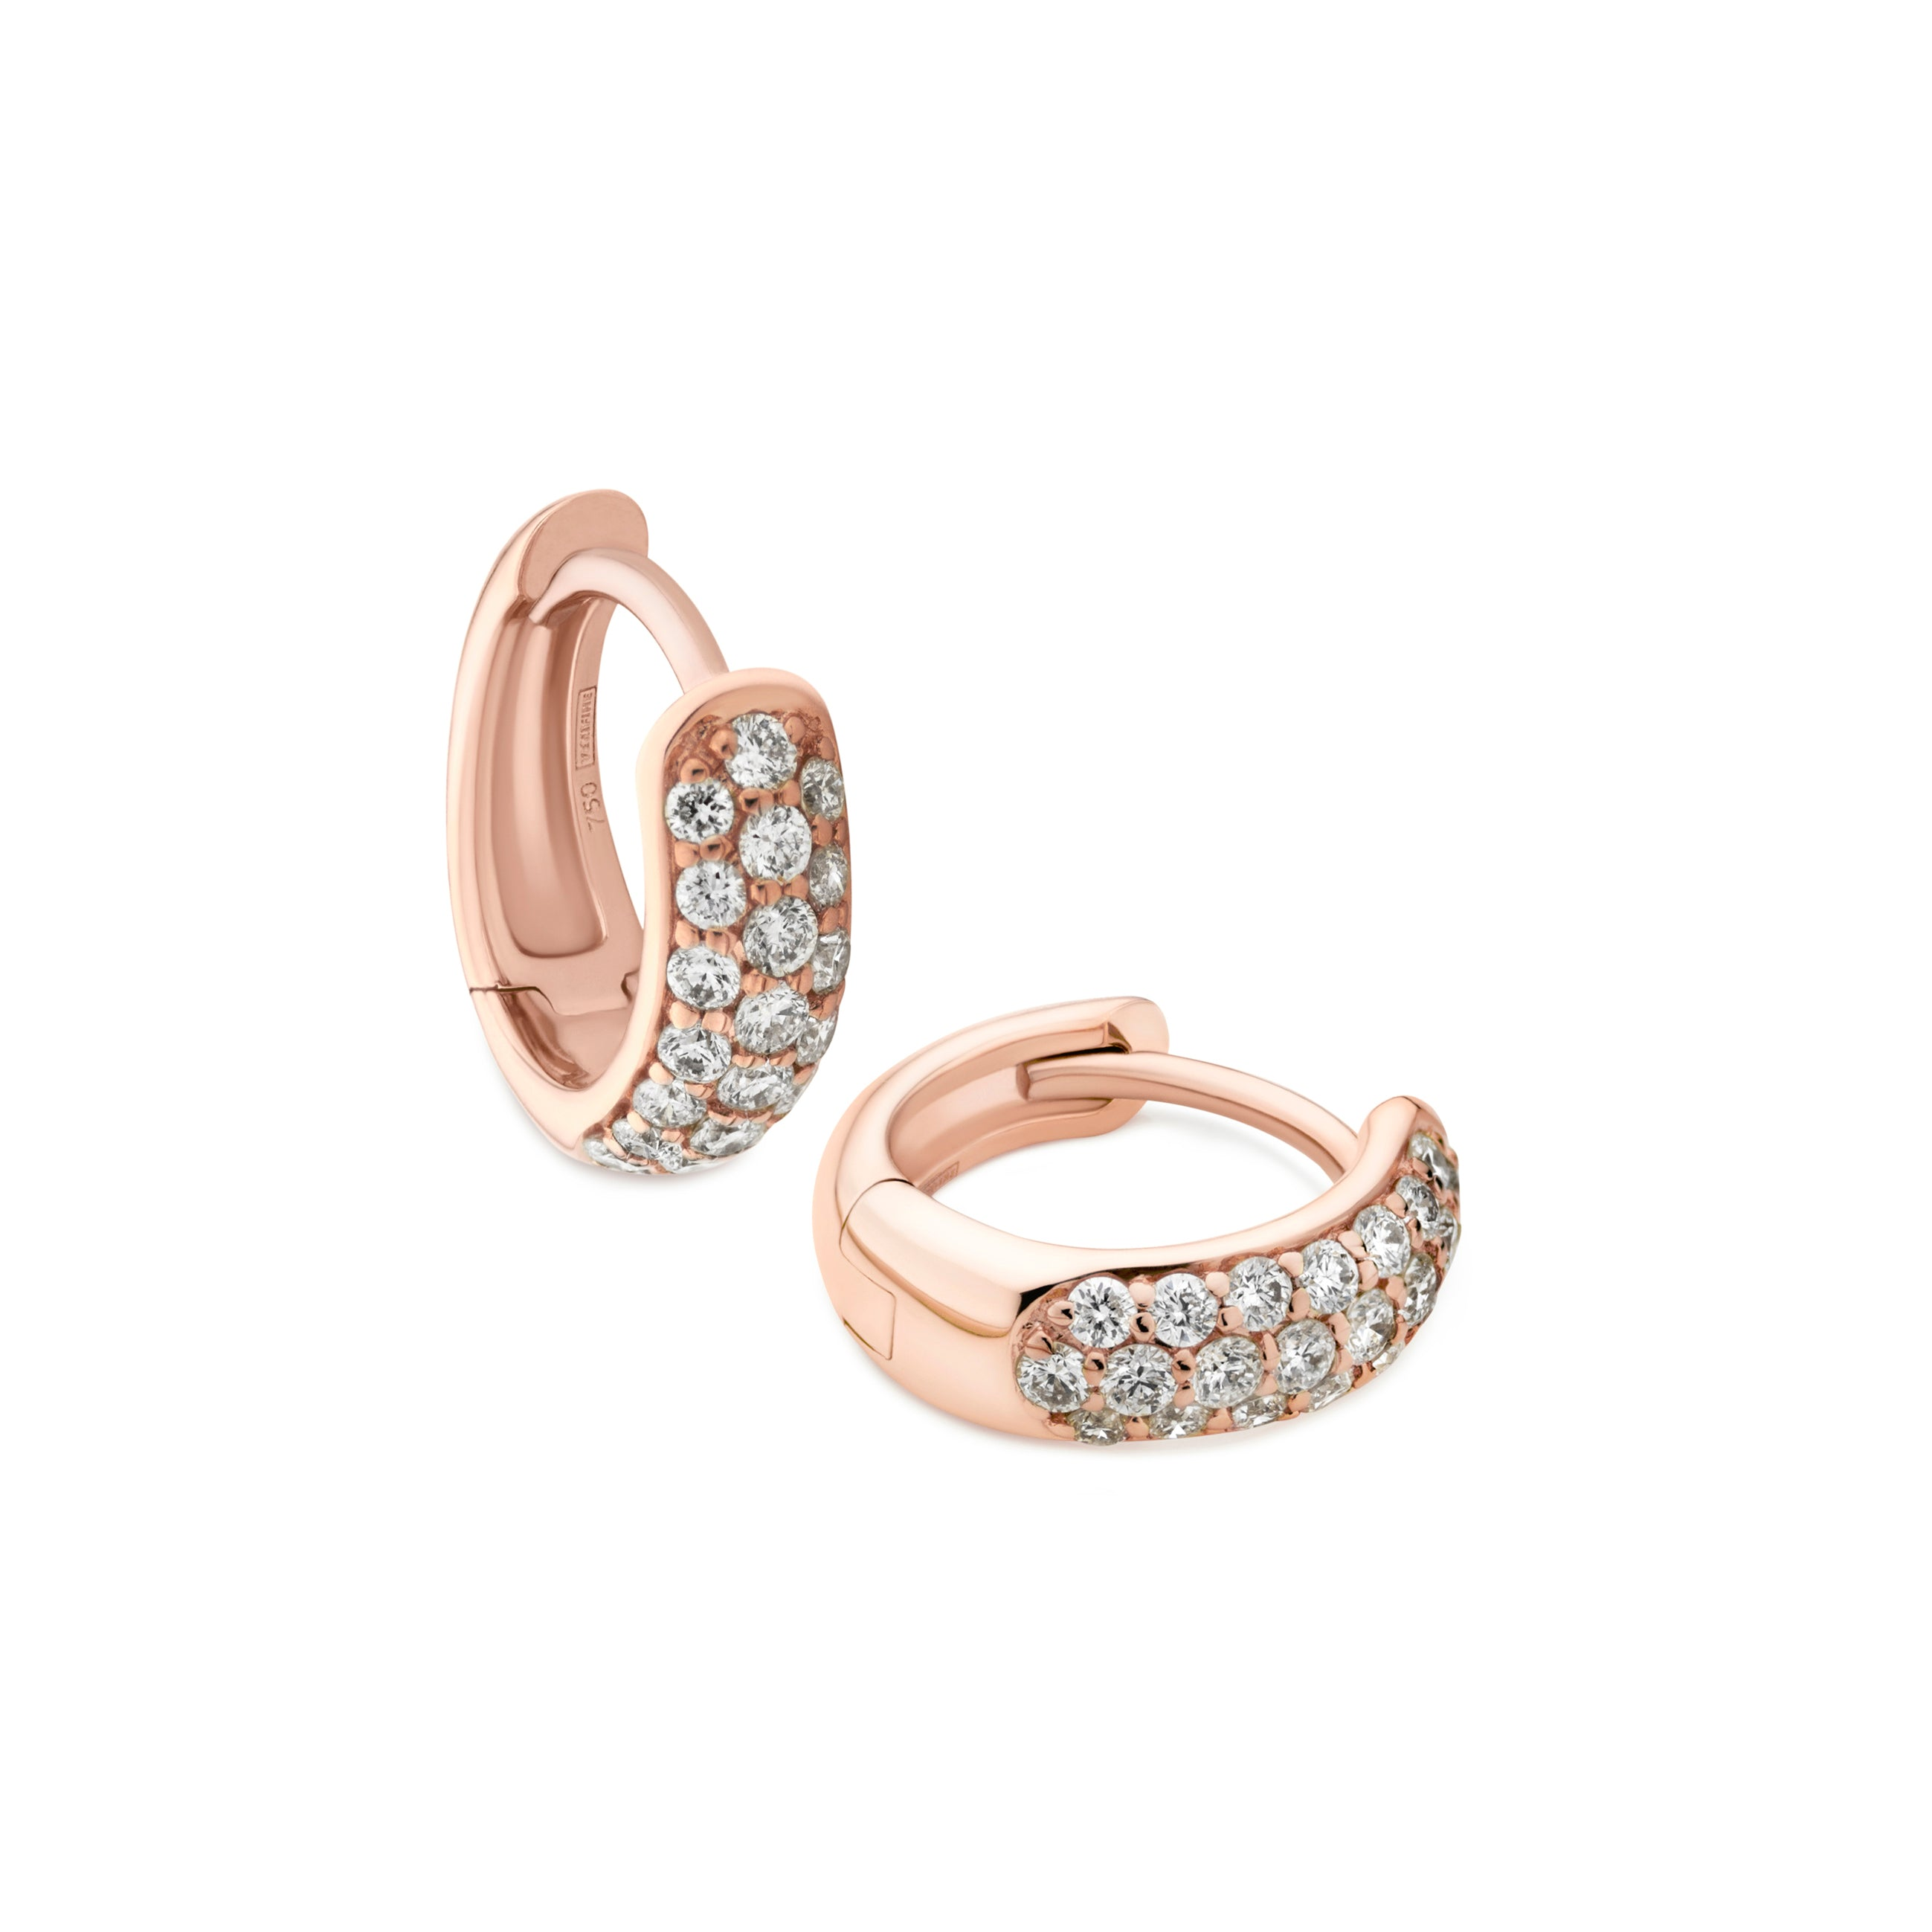 3-row diamond Gemopoli huggie earrings